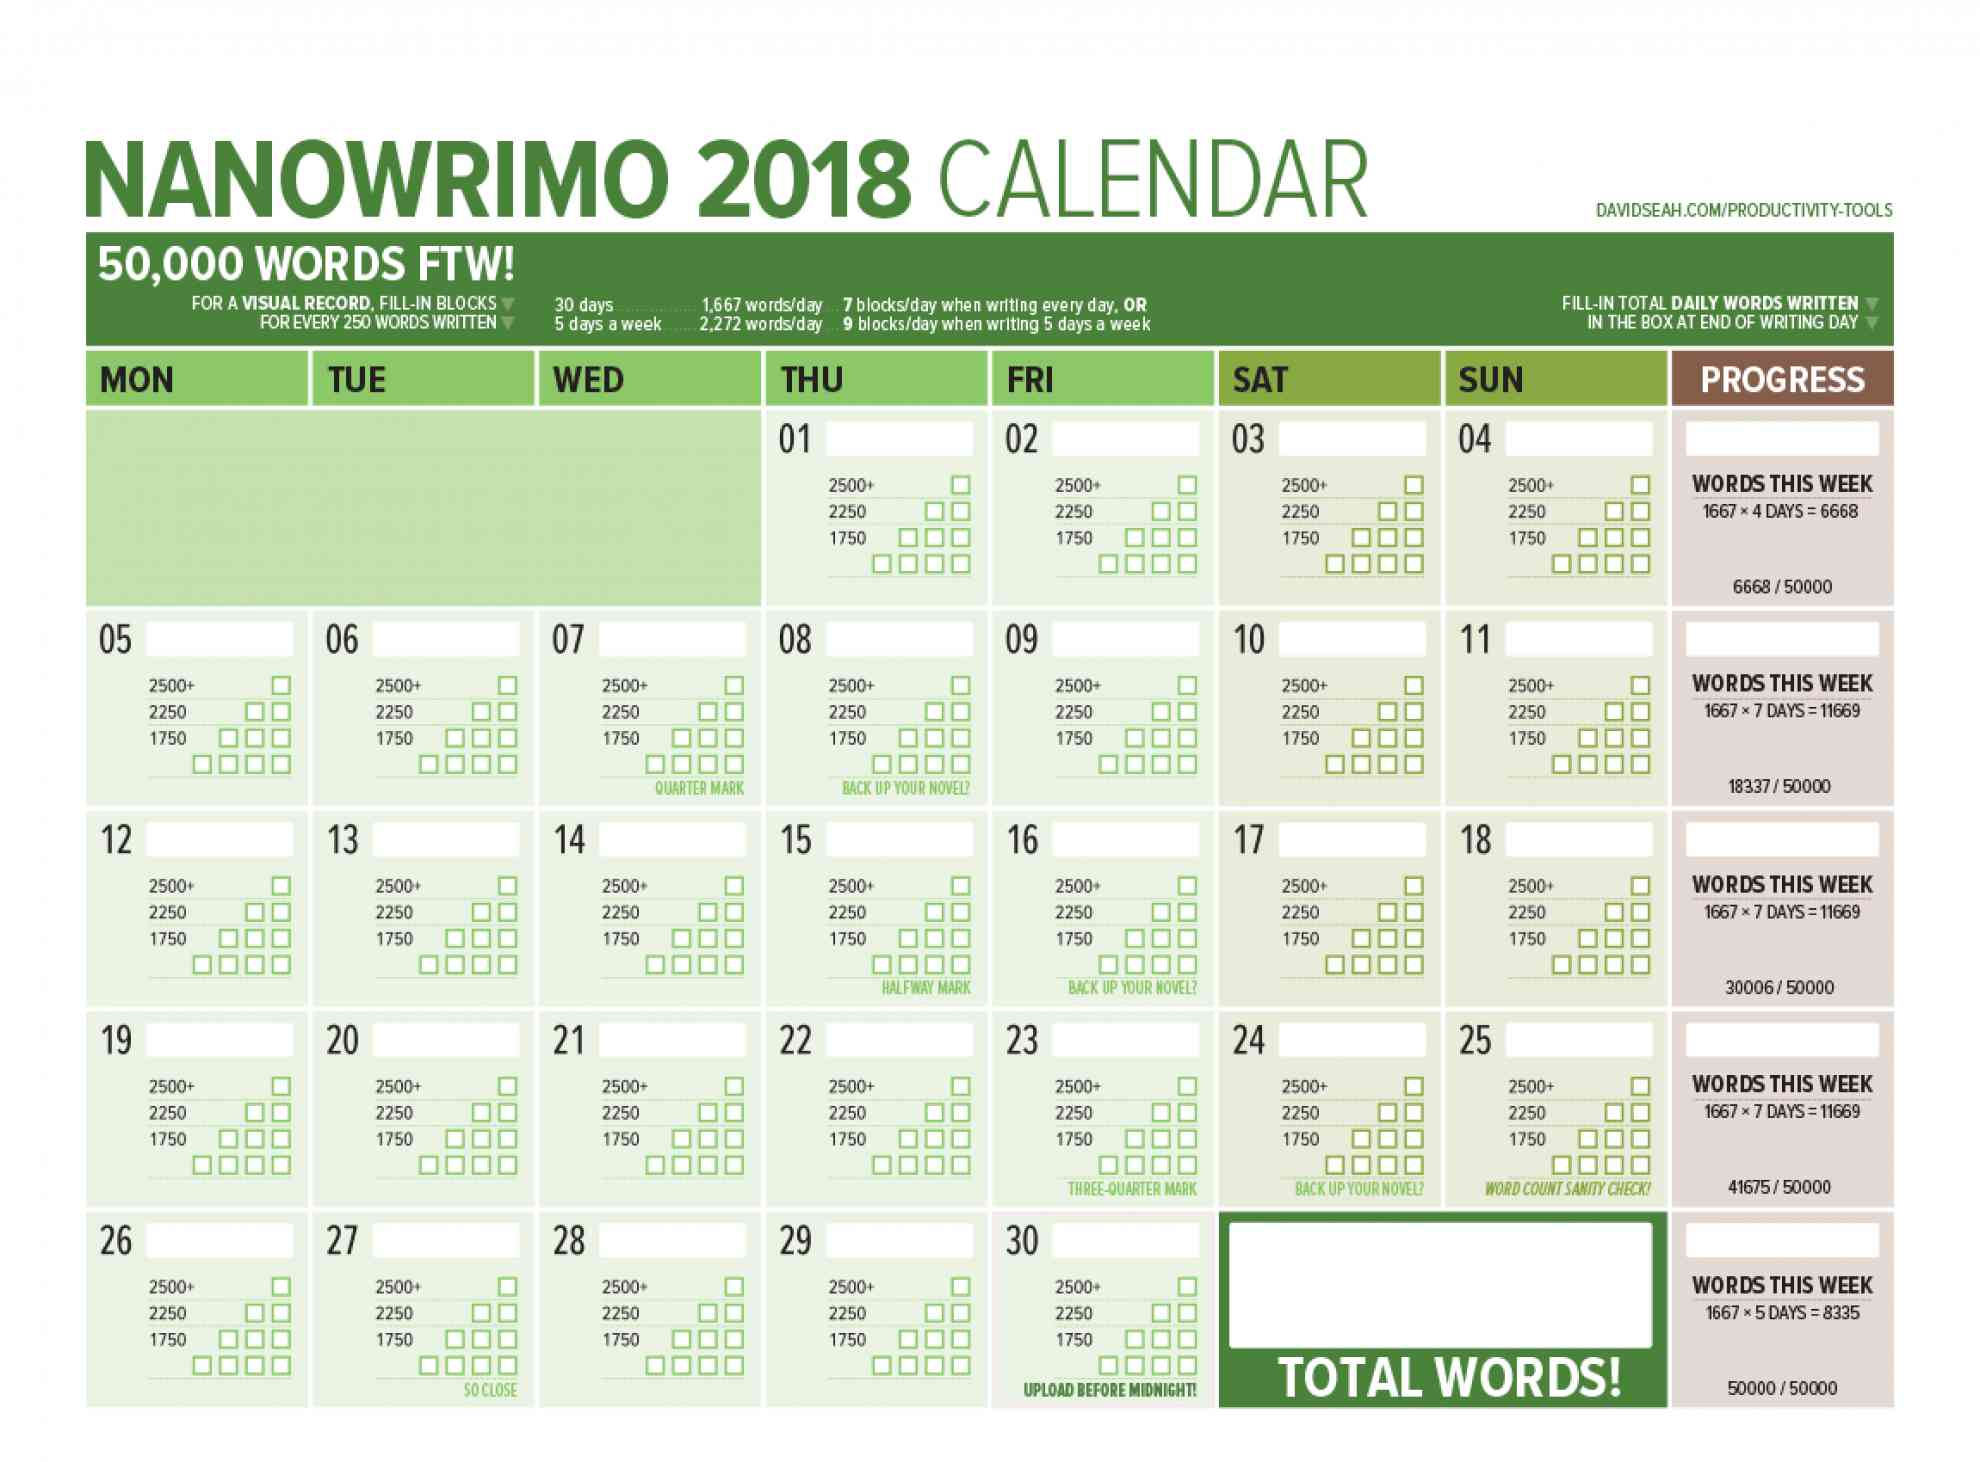 NaNoWriMo 2018 Word Counting Calendar by Dave Seah